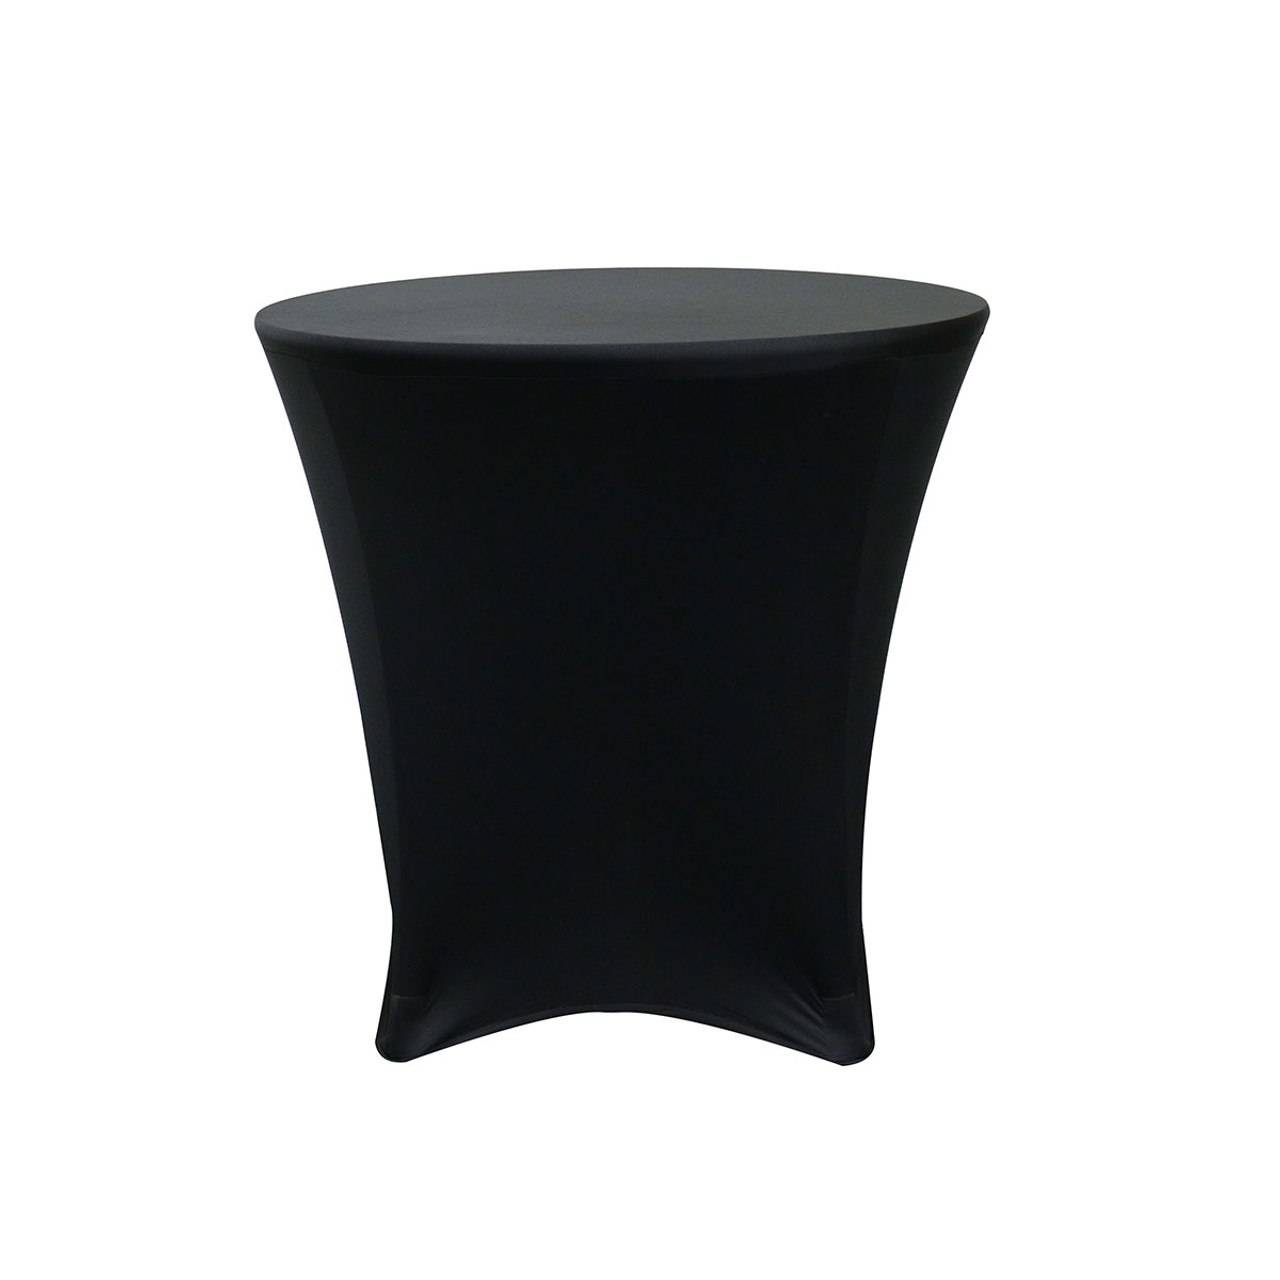 wholesale chairs and tables in los angeles good chair for gaming 30 x inch lowboy cocktail round stretch spandex table cover black covers